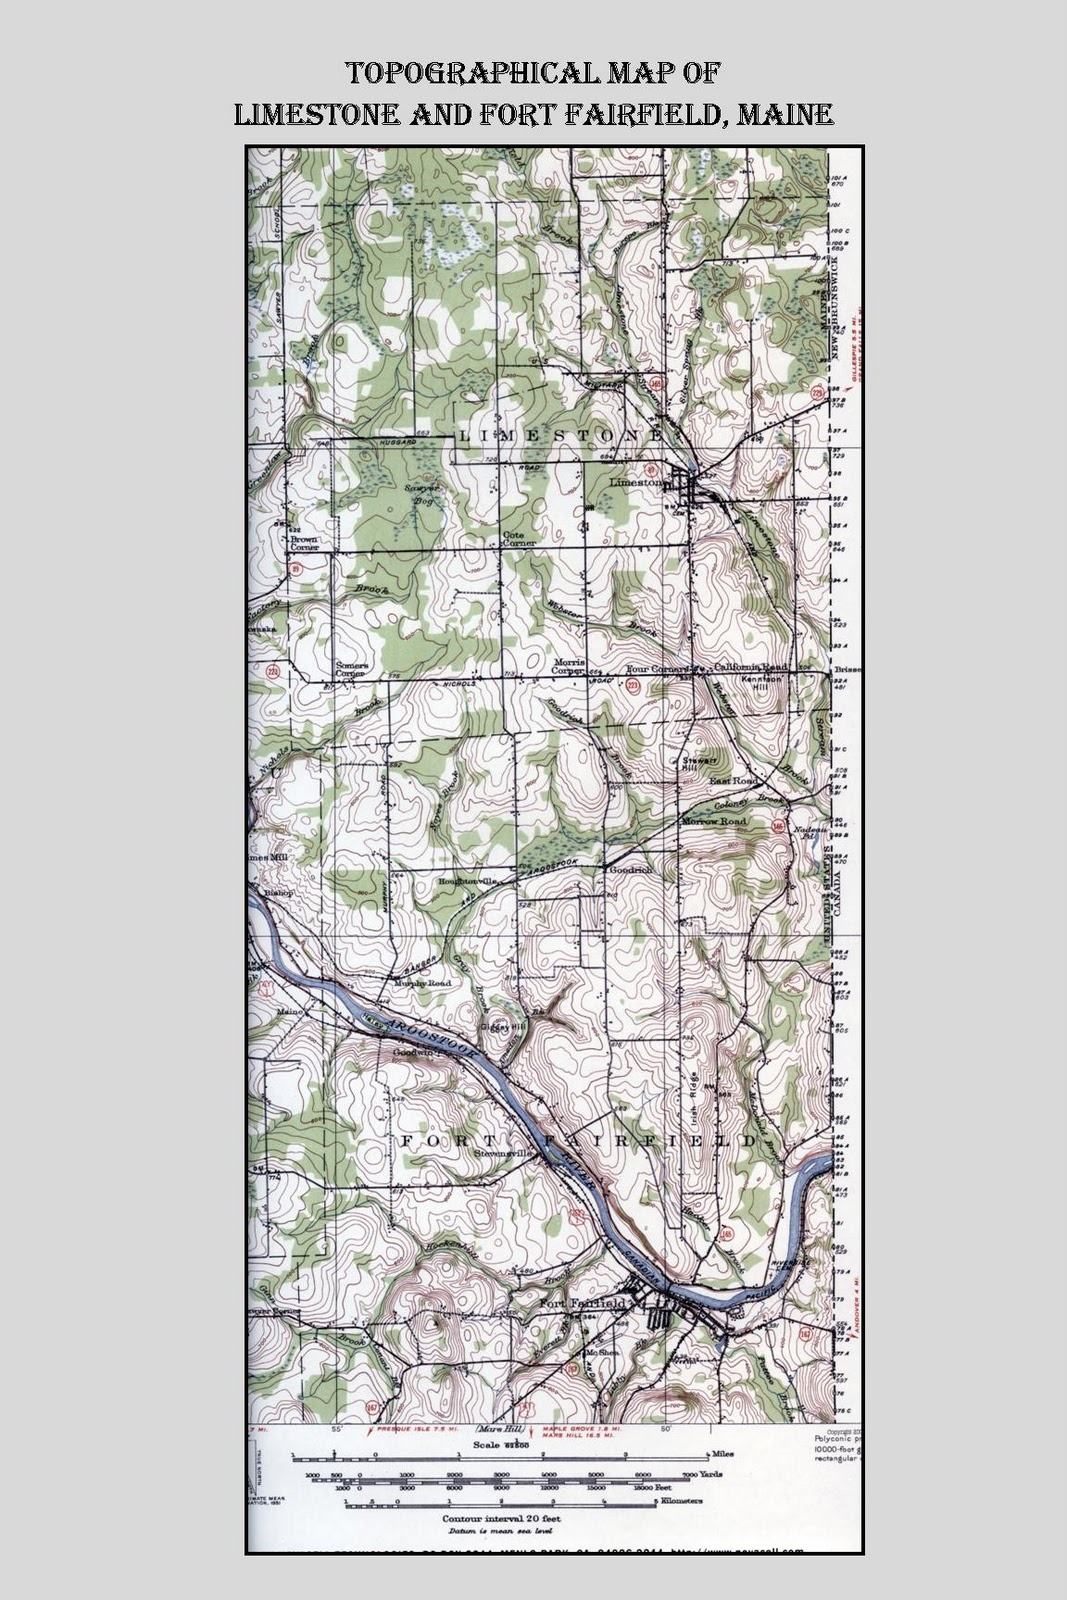 Limestone Maine My Home Town Topographical Map Of Limestone And